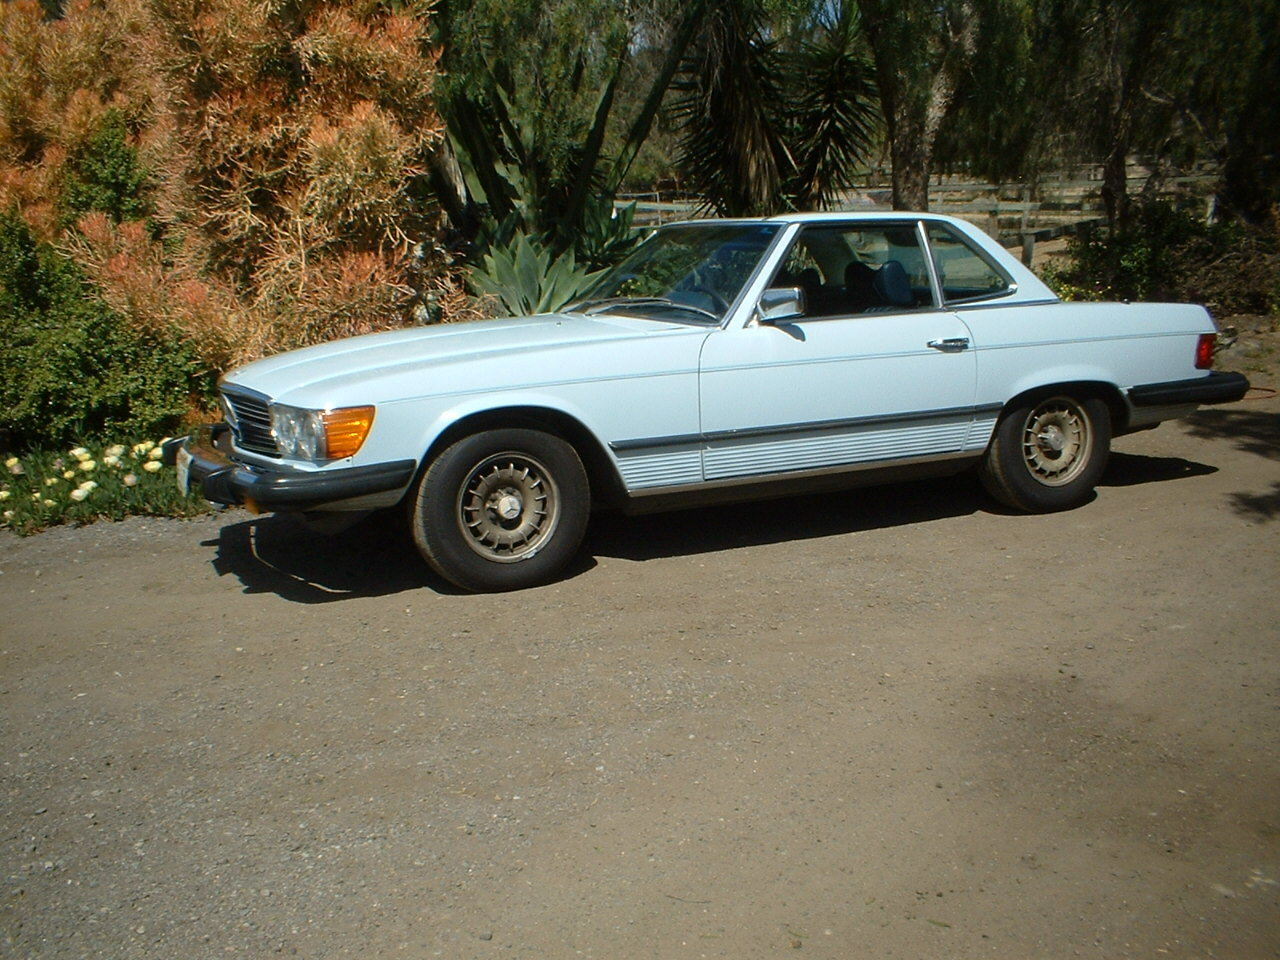 1979 original California car - last of the real MBZ For Sale (picture 1 of 5)